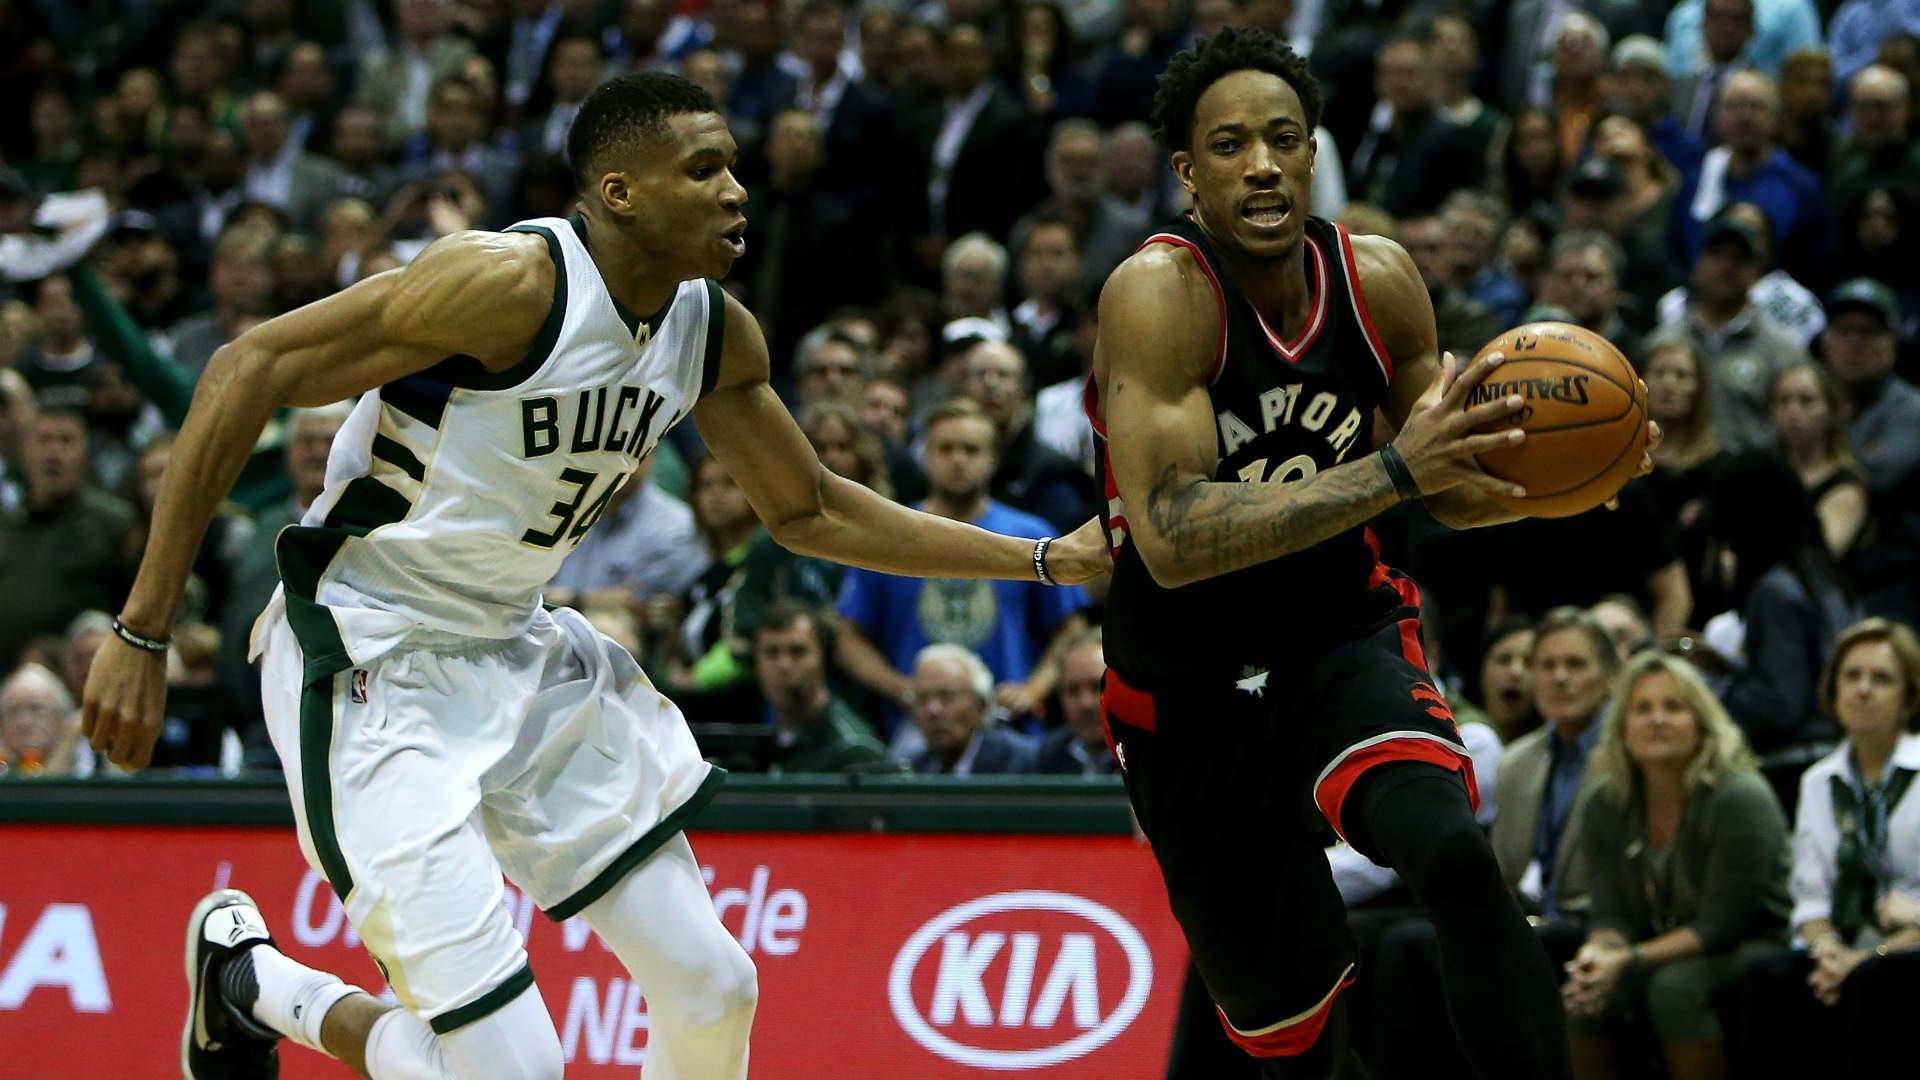 Budenholzer the main focus for Raptors, Bucks